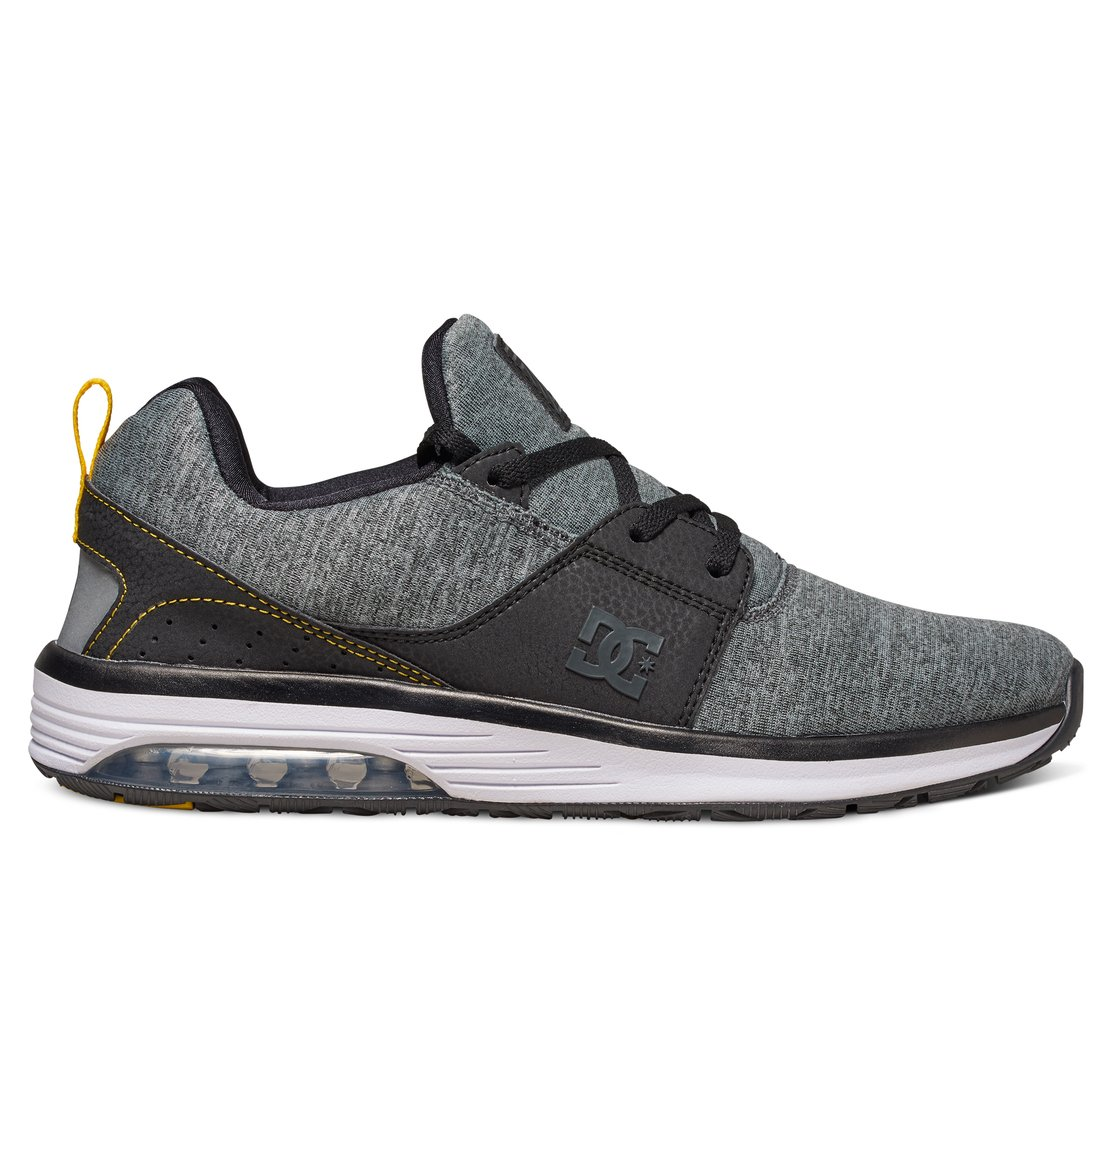 DC Shoes Heathrow EV - Shoes - Baskets - Garçon - US 12/UK 11/EU 29 - Noir